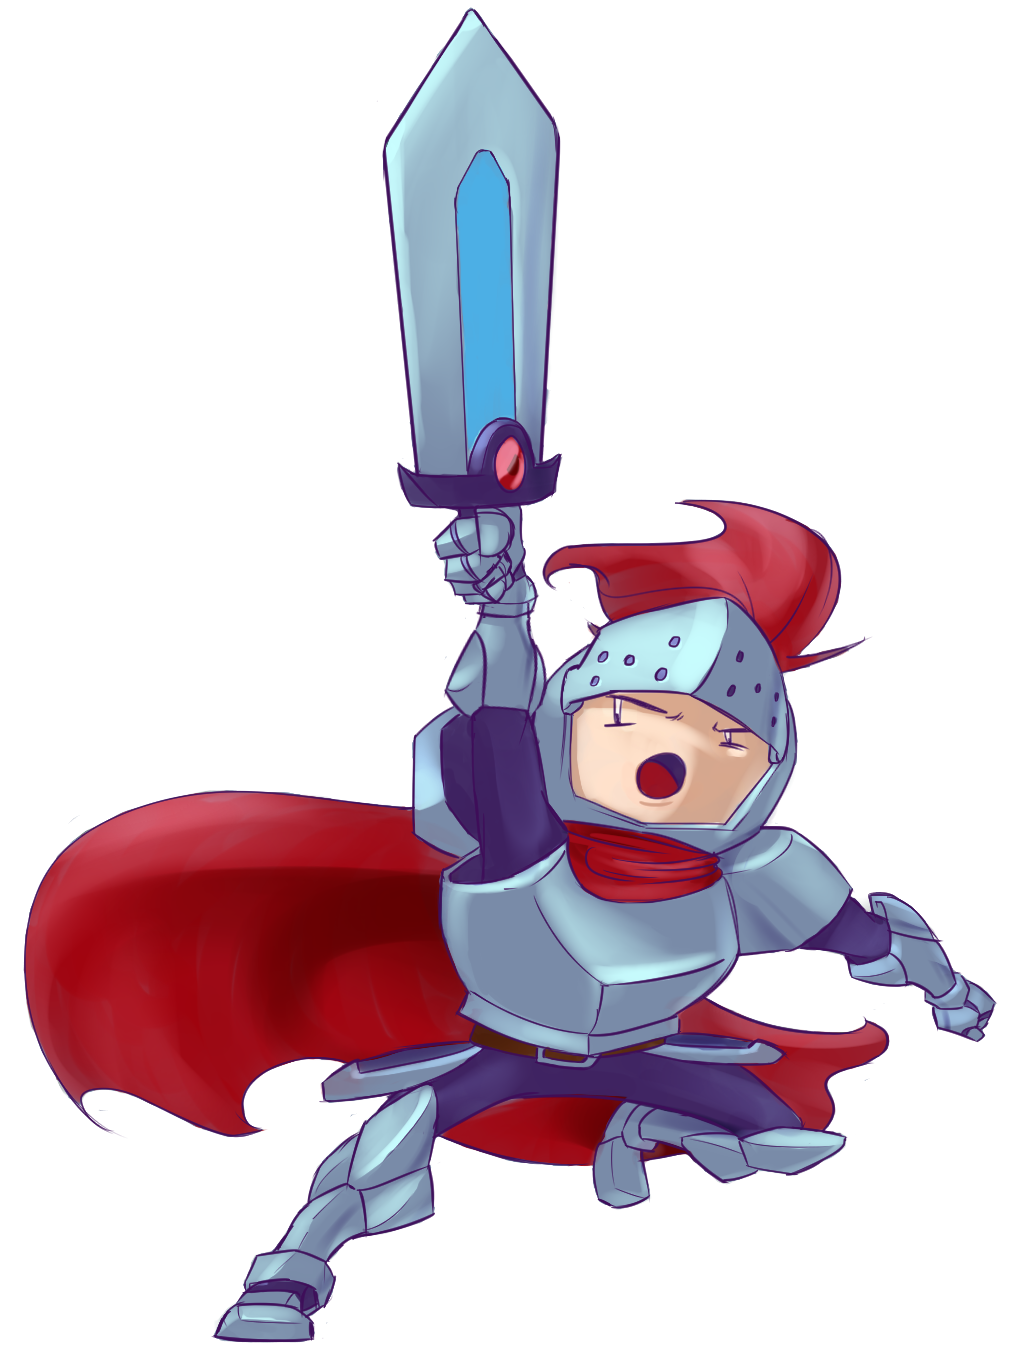 knight_artwork.png